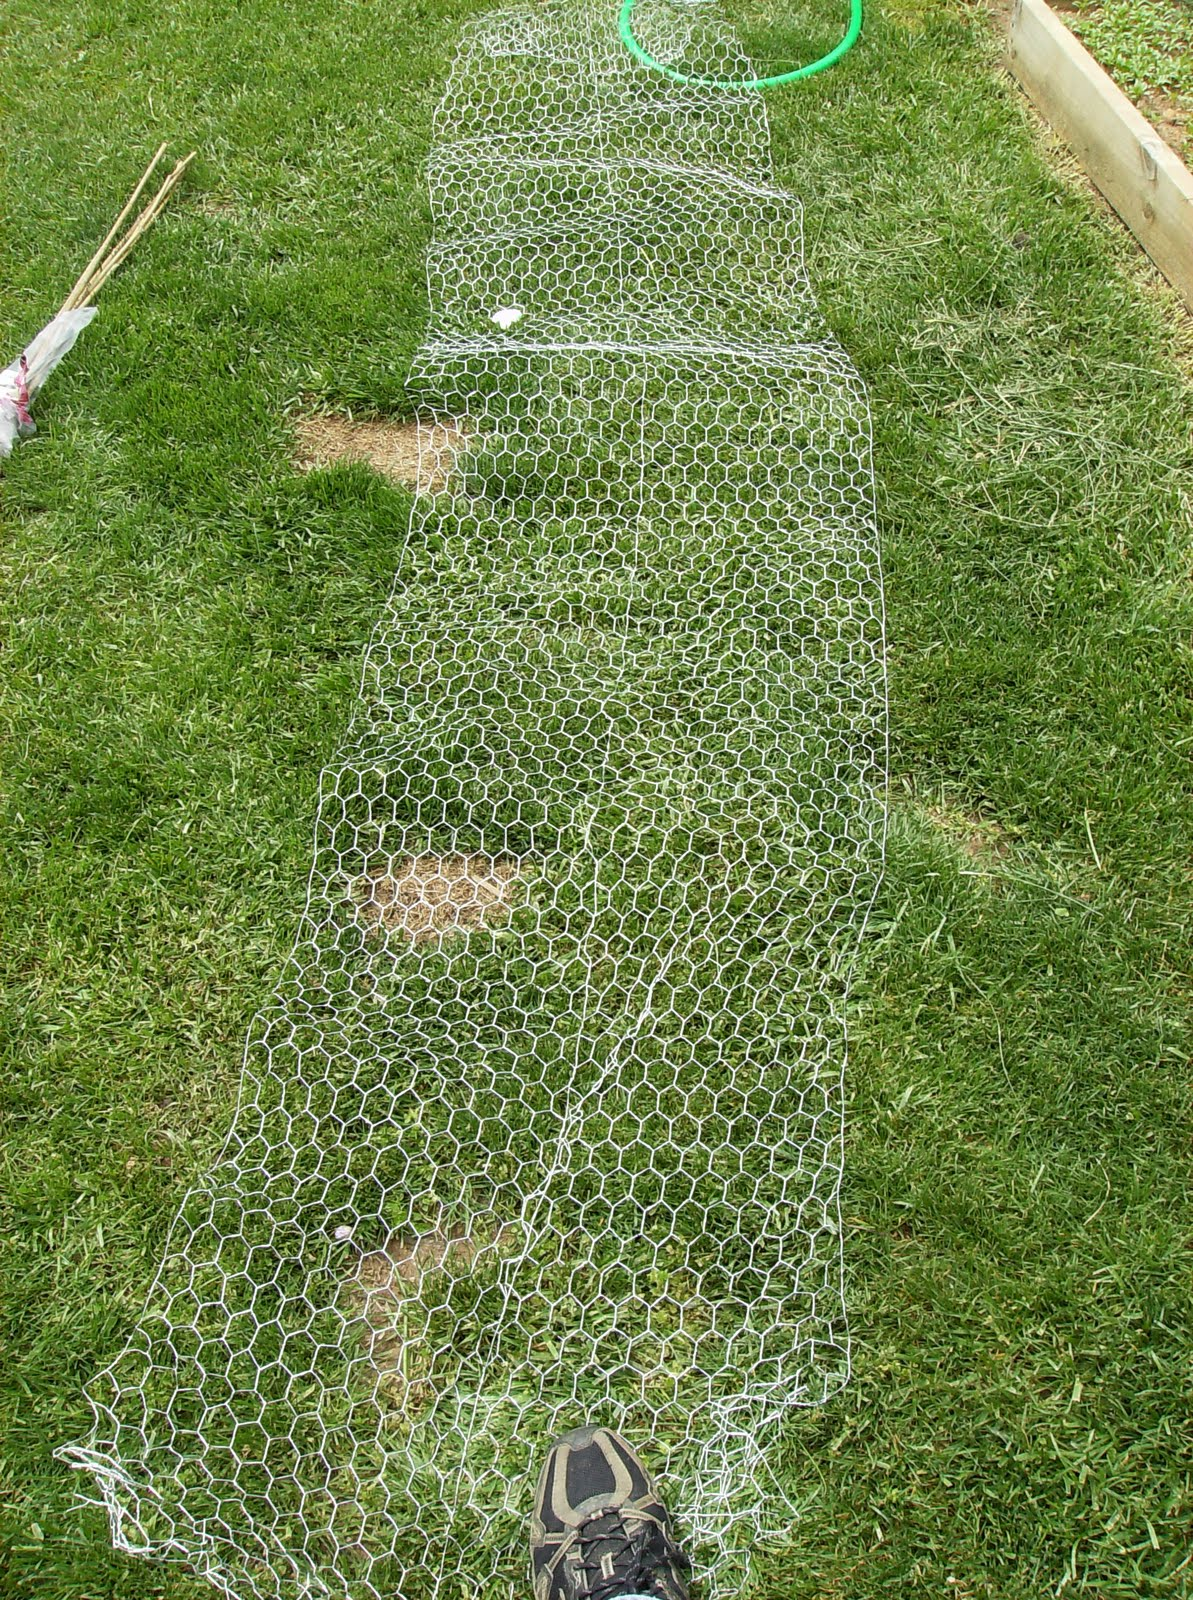 building a low cost vegetable garden trellis in pictures the 10 feet of chicken wire